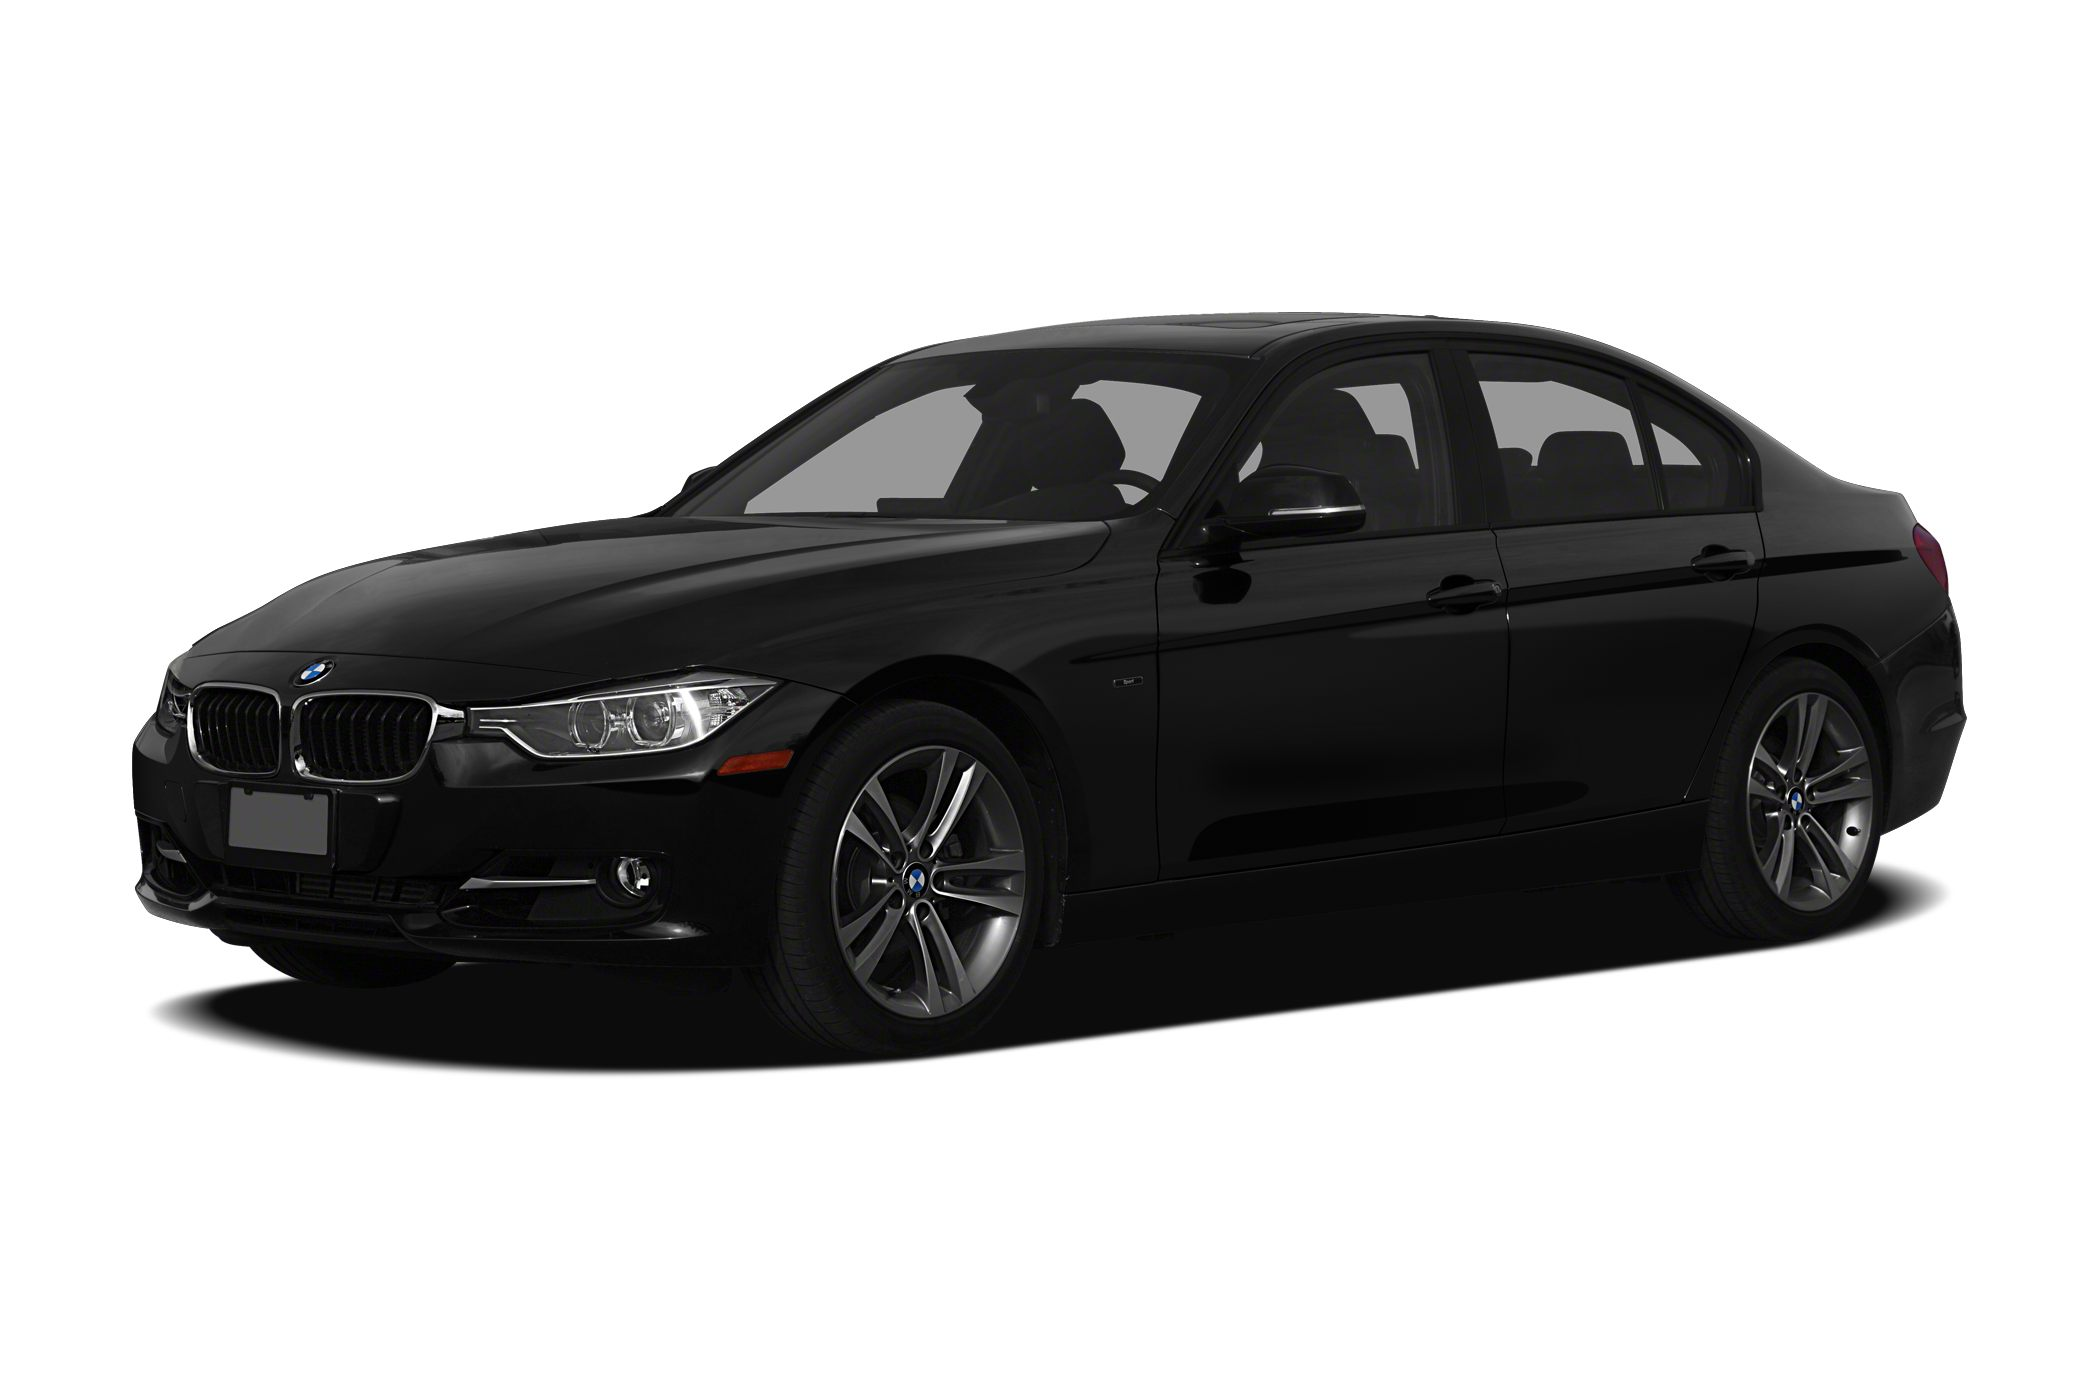 2012 BMW 328 I Convertible for sale in Charleston for $36,180 with 24,373 miles.